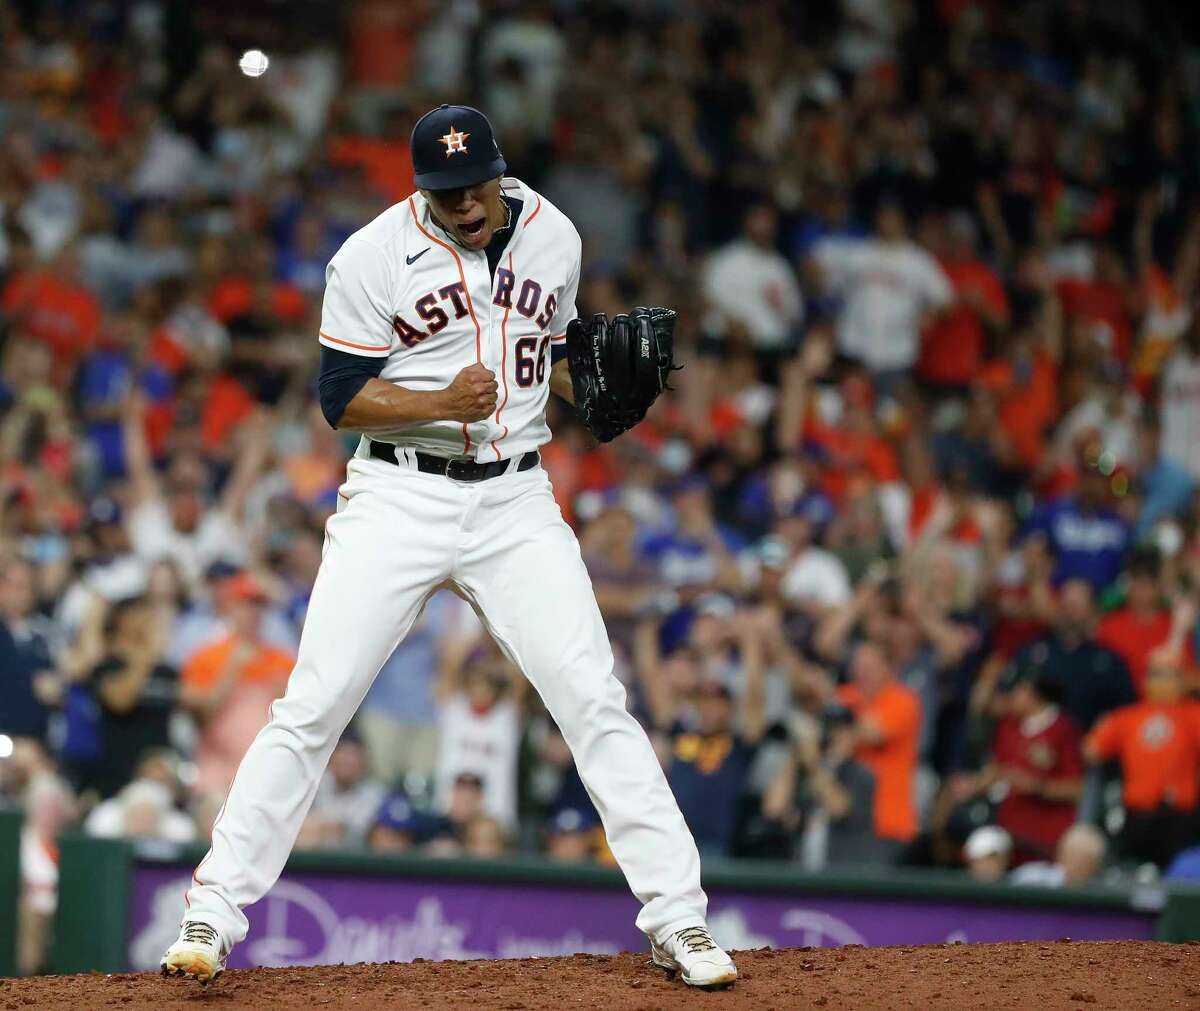 Bryan Abreu was able to celebrate a save Wednesday against the Dodgers, but getting there was an adventure for the Astros' beleaguered bullpen.